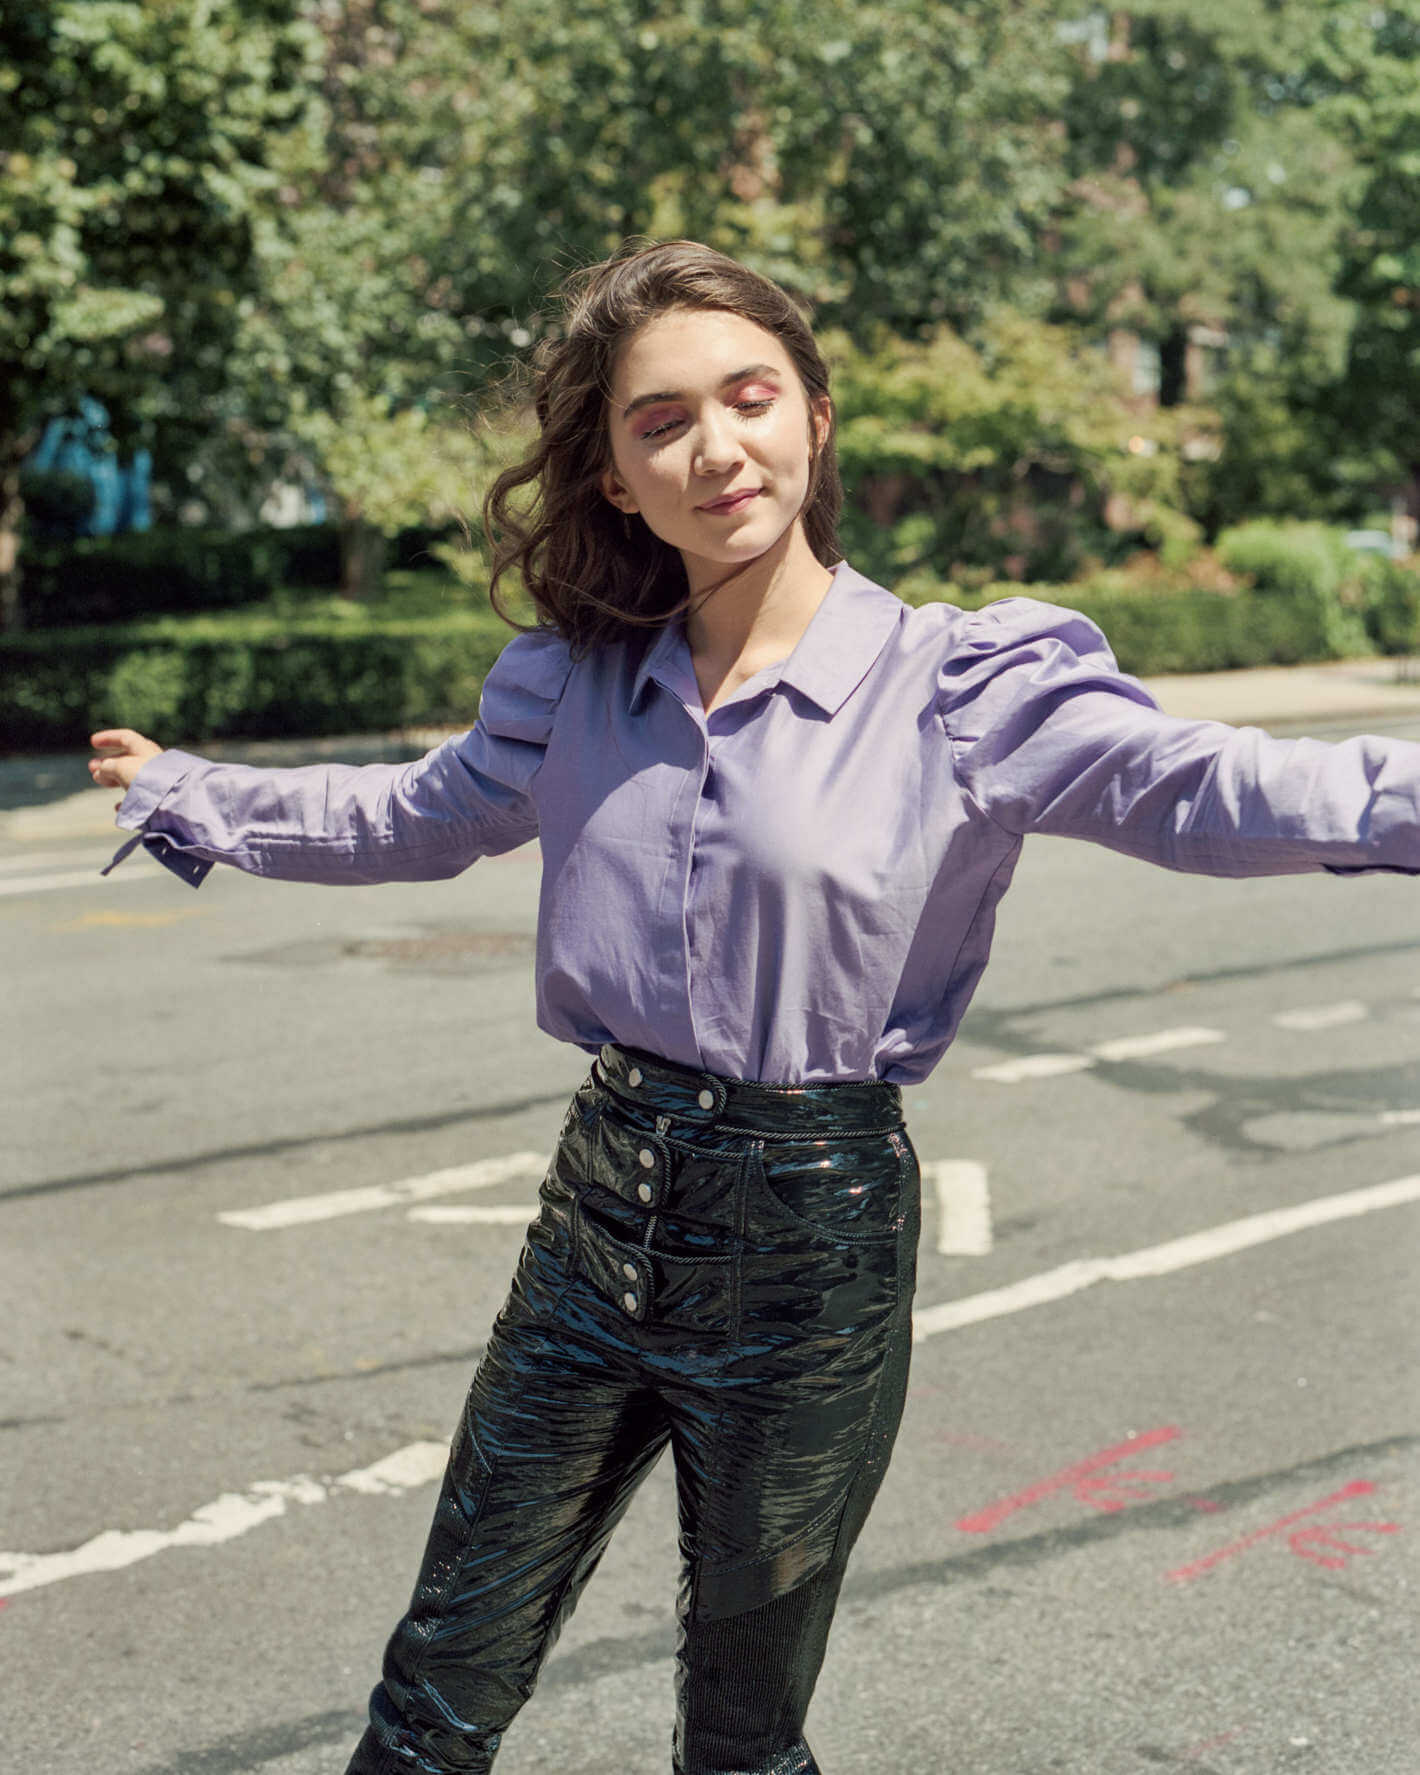 Rowan Blanchard hot pictures